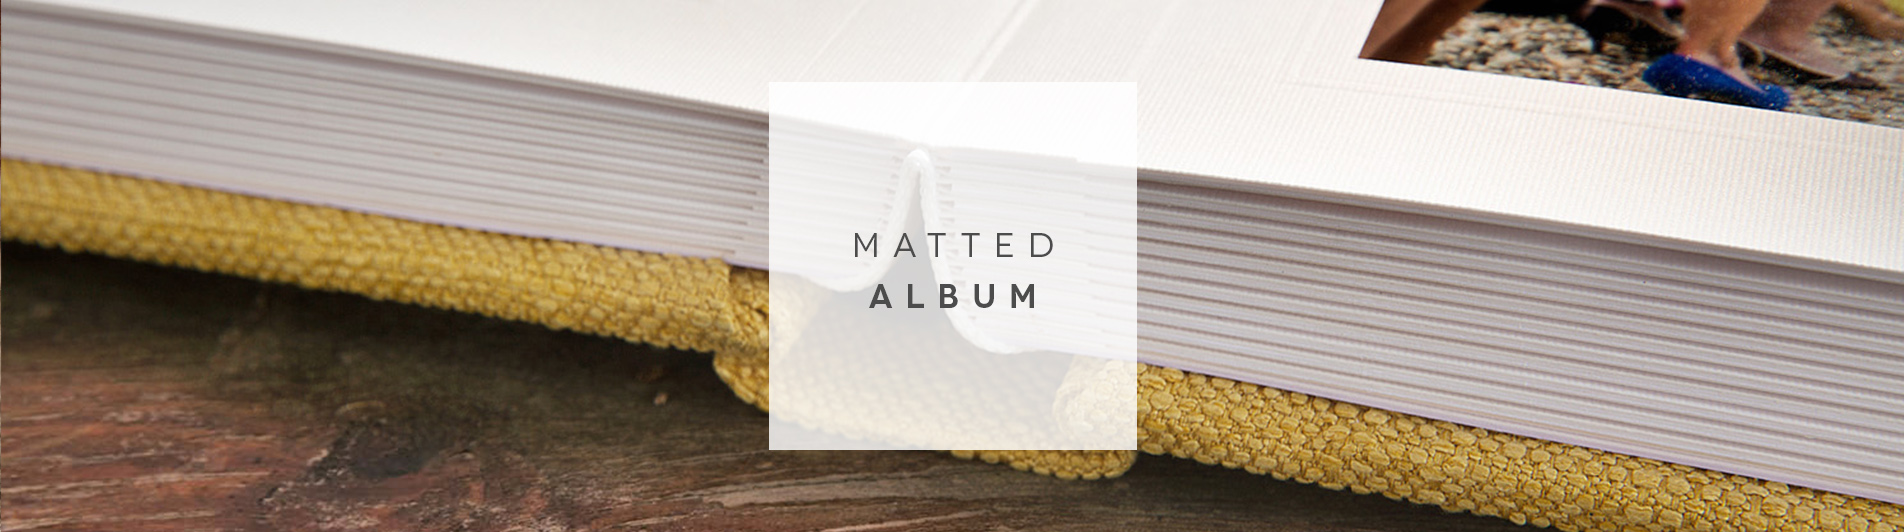 matted album header